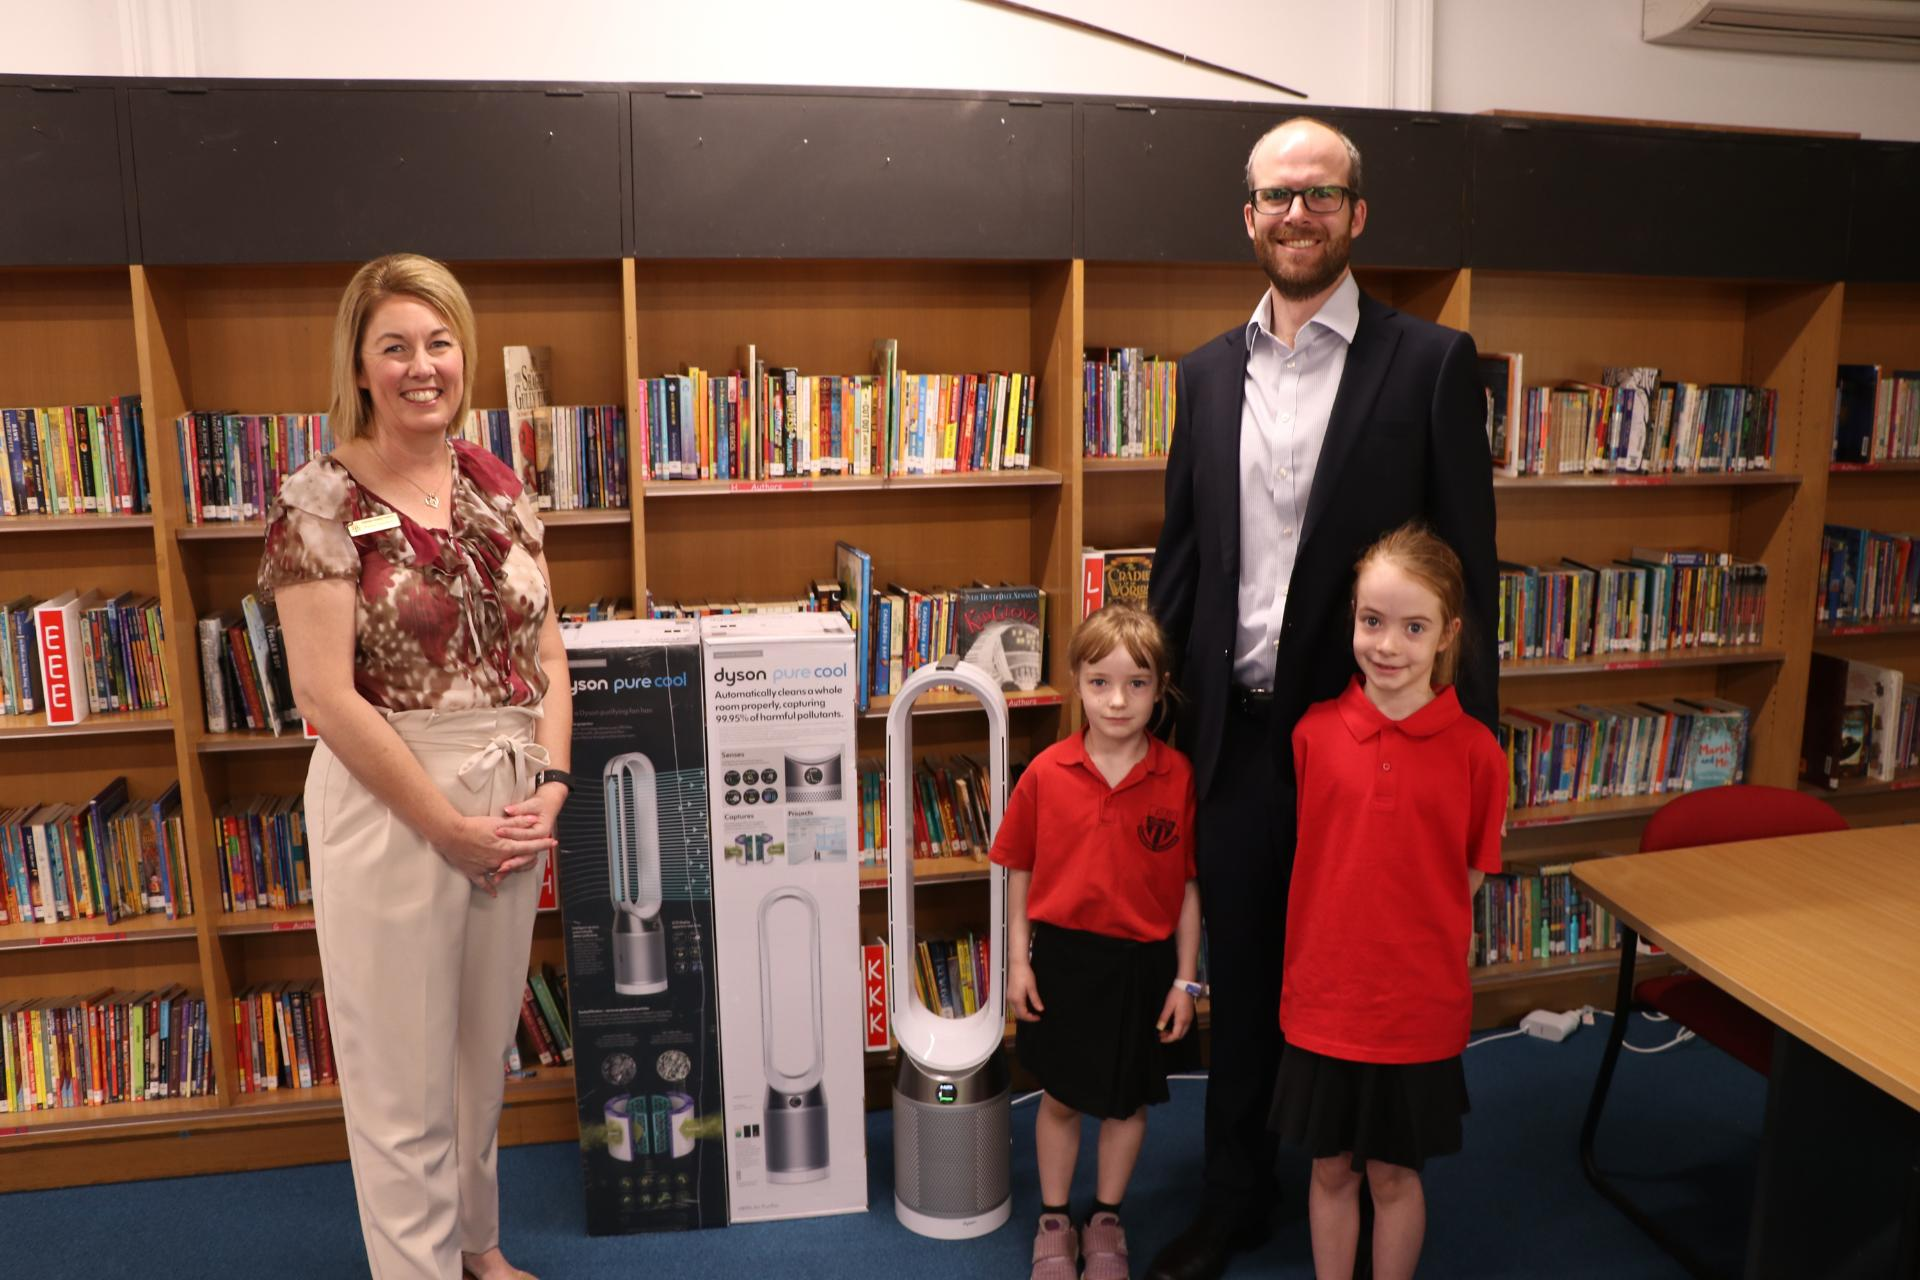 Dyson donating product to local school